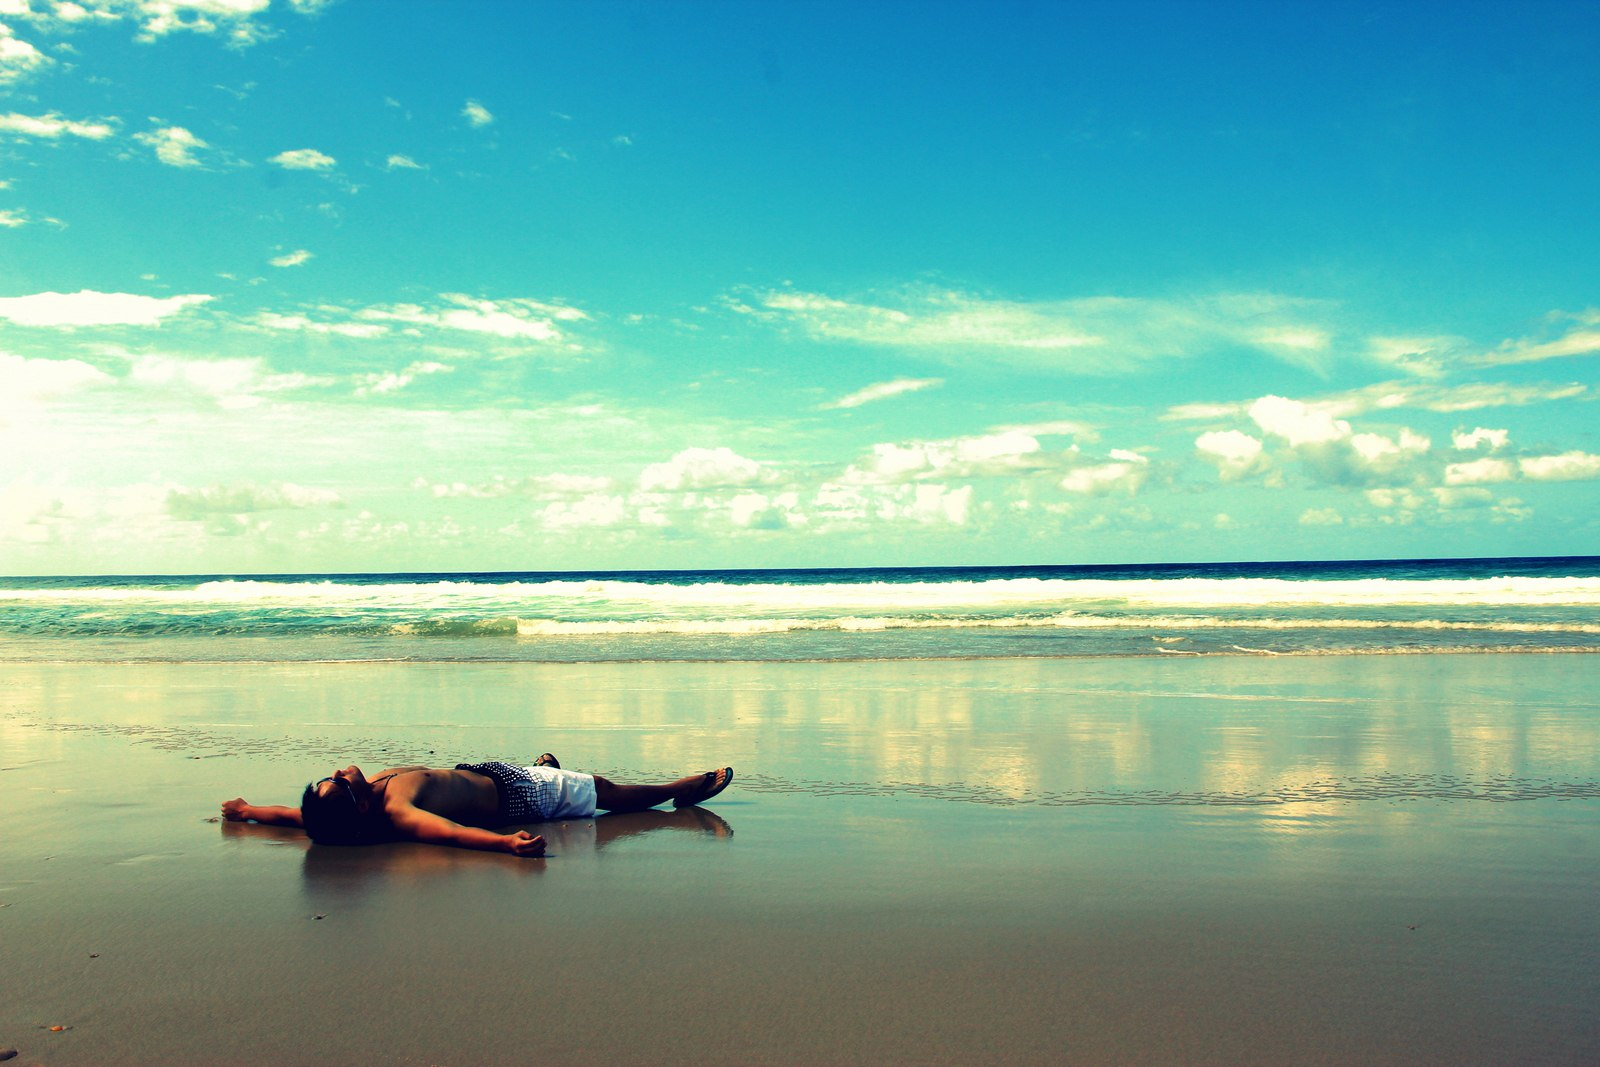 Dream to laze around on the beach right? LOL